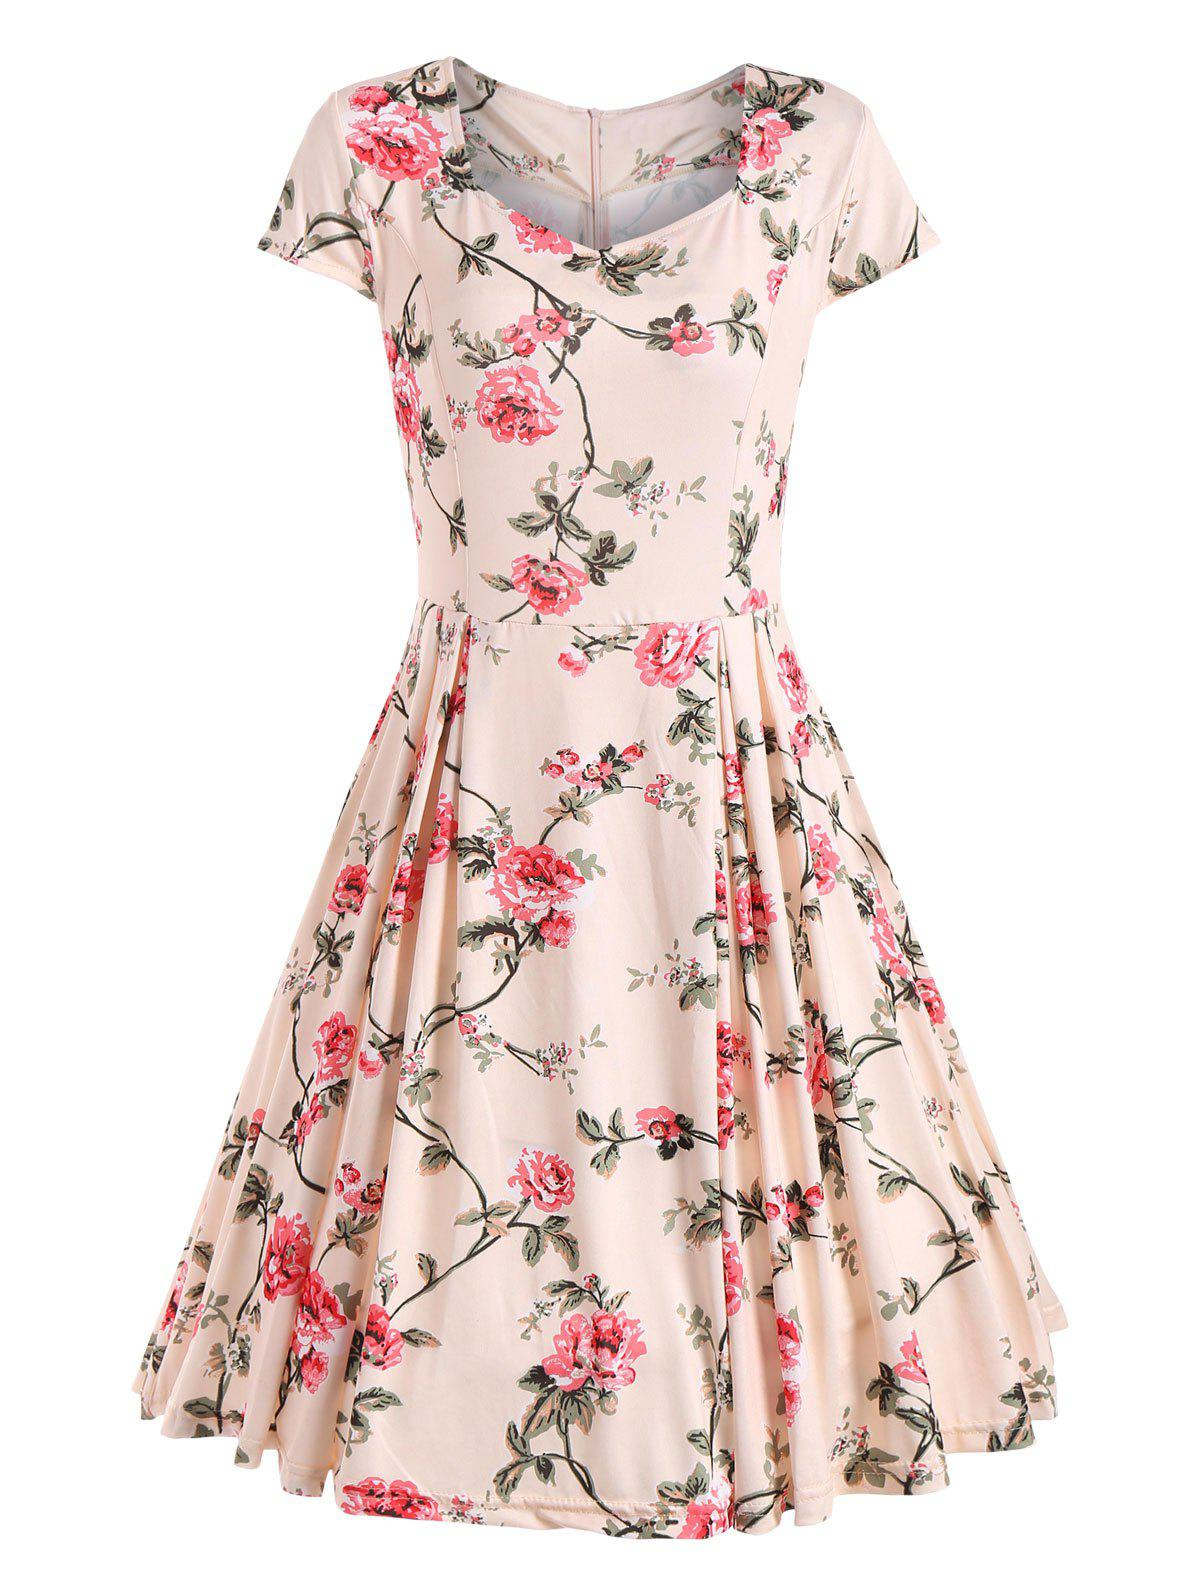 Cap Sleeve Floral Print Vintage Dress - APRICOT 2XL